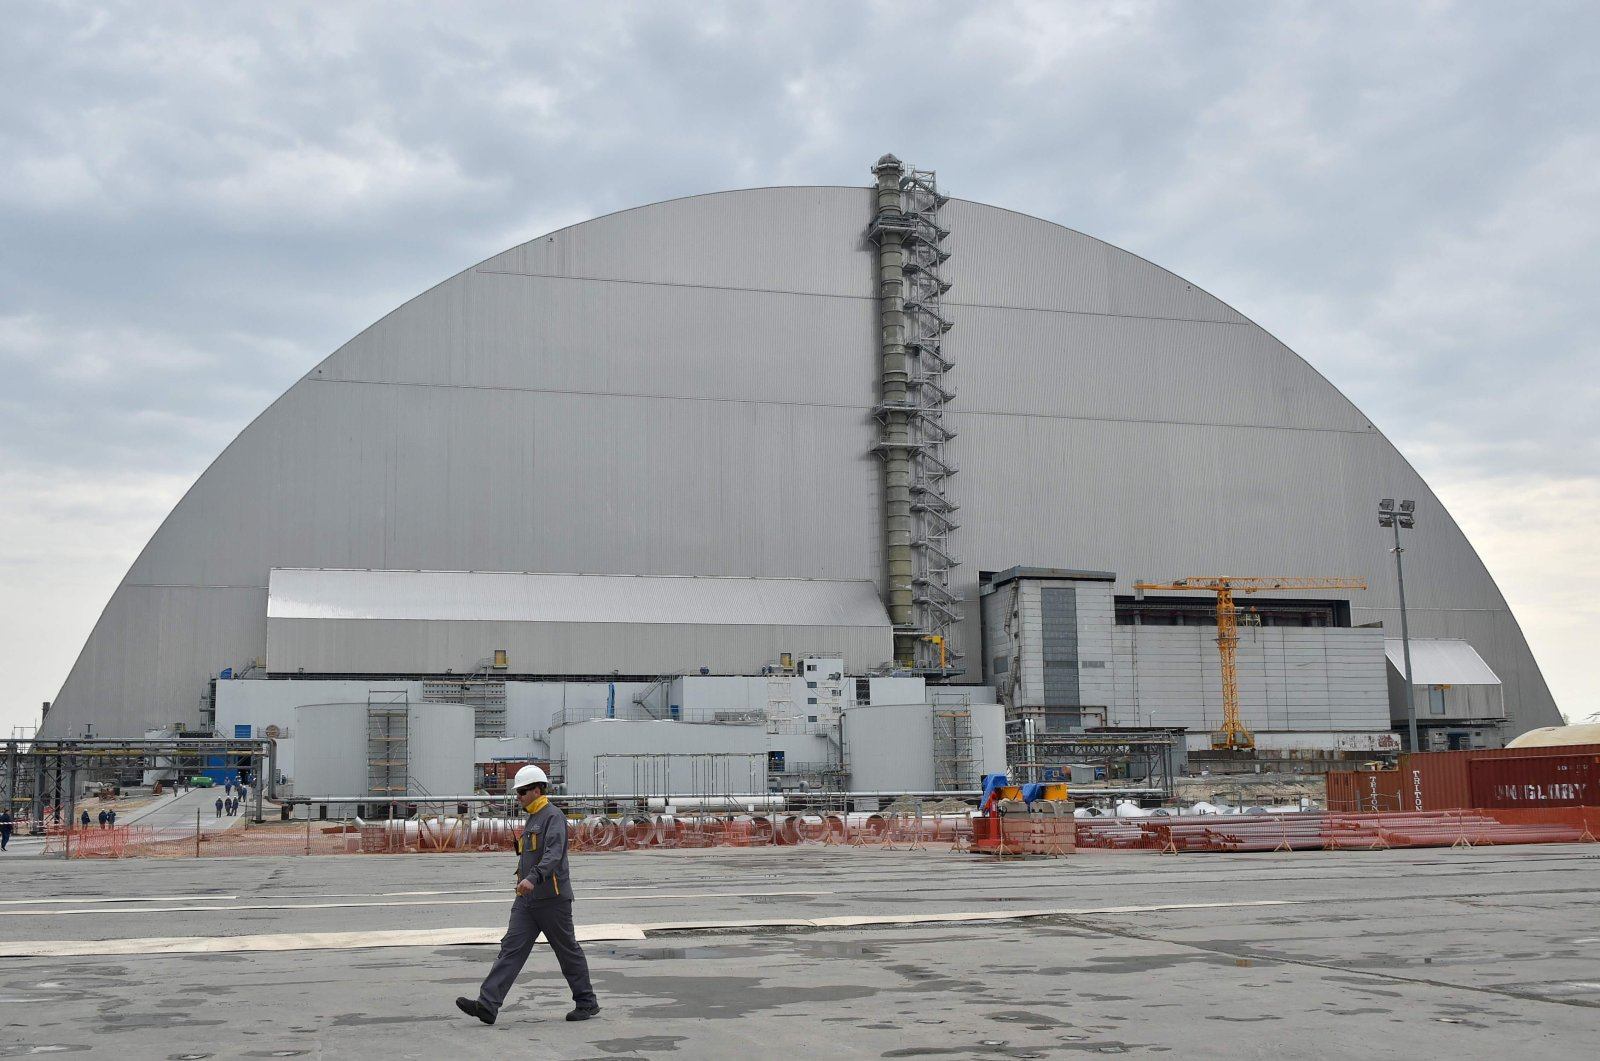 Workers walk next to the new safe confinement over the fourth block of the Chernobyl nuclear power plant, Chernobyl, Ukraine, April 26, 2017. (AFP Photo)